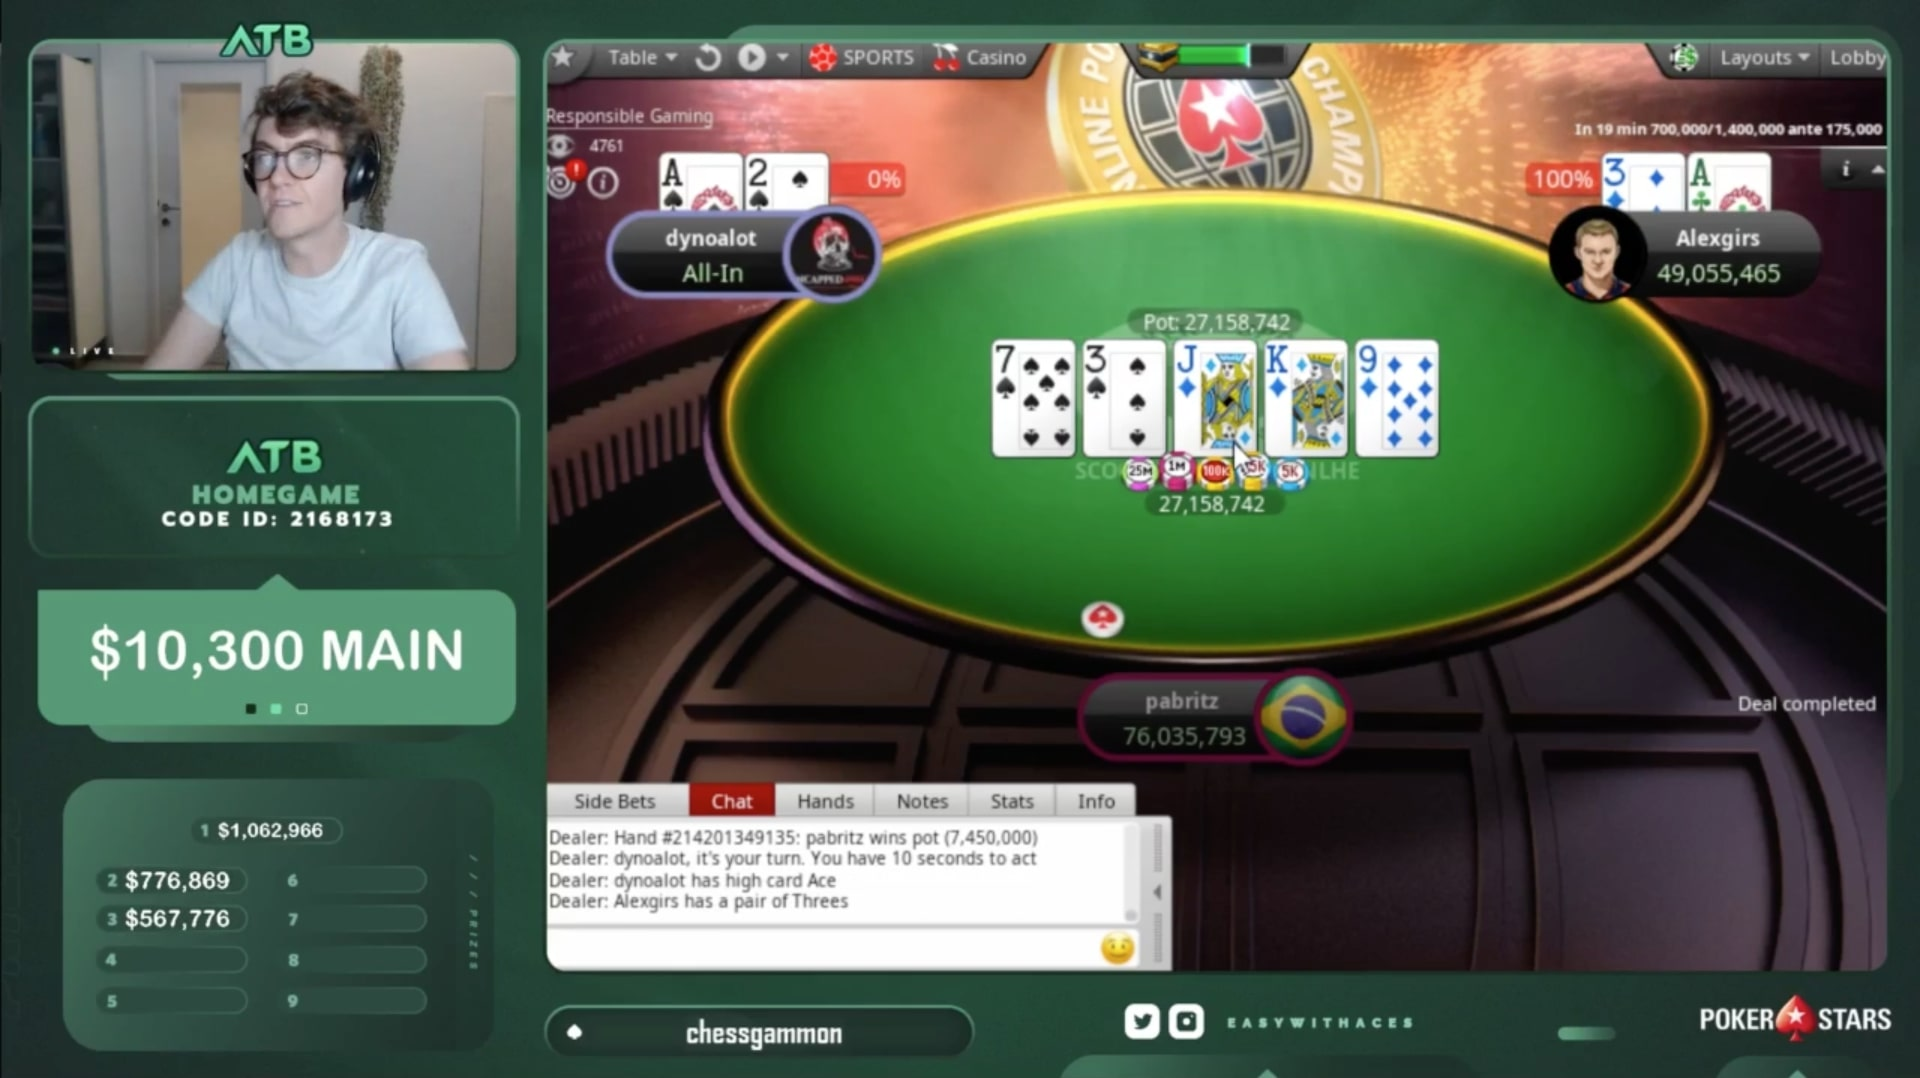 Белорус Александр «alexgirs» Гирс выиграл SCOOP ME на PokerStars и получил $920,595 8